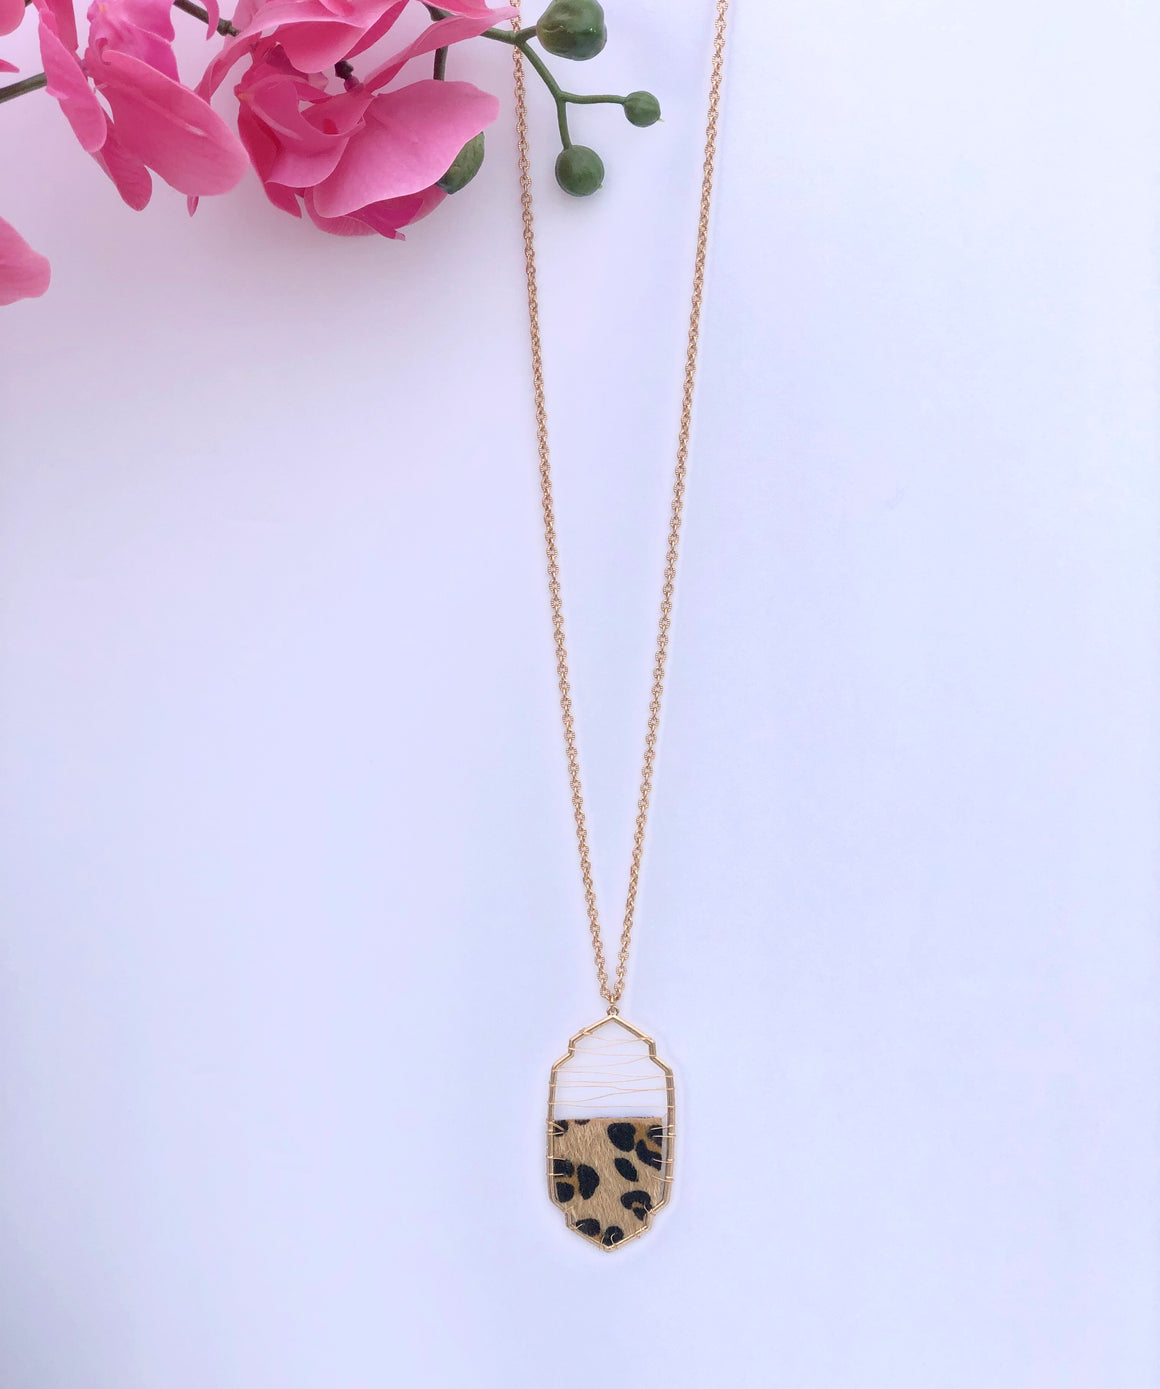 Leopard Patch Pendant Necklace - ShopSpoiled